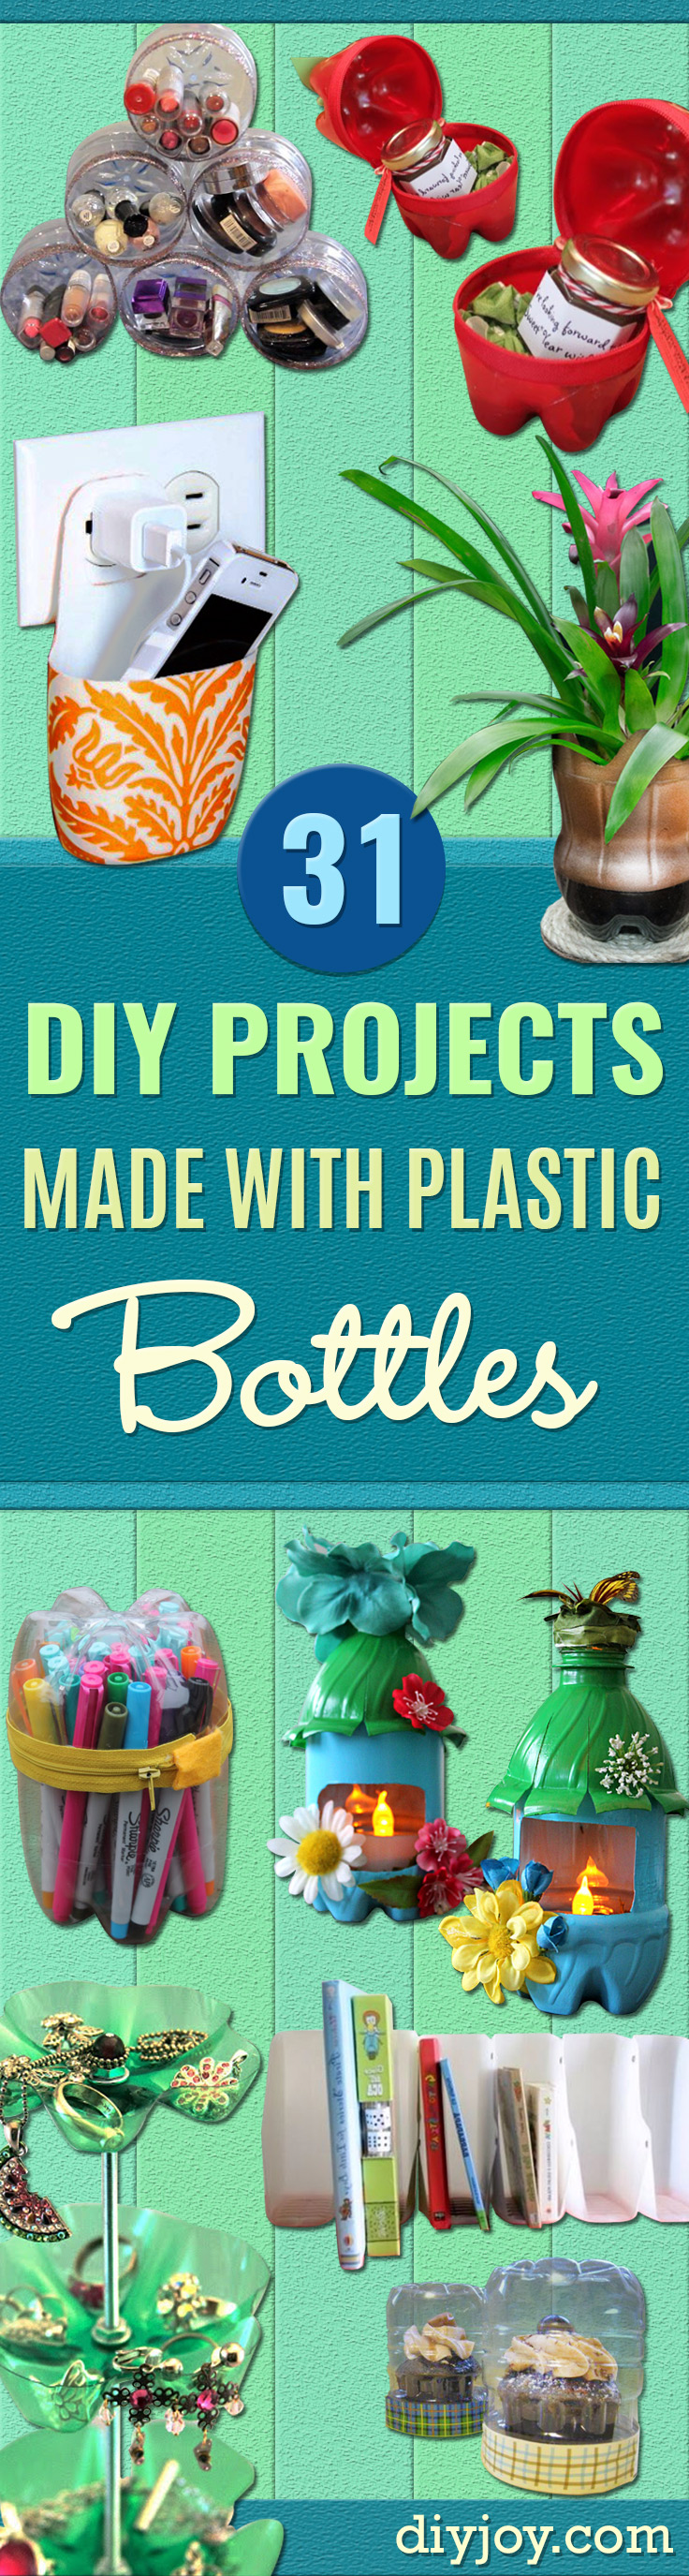 Cool Diy Projects 31 Awesome Diy Projects Made With Plastic Bottles Diy Joy